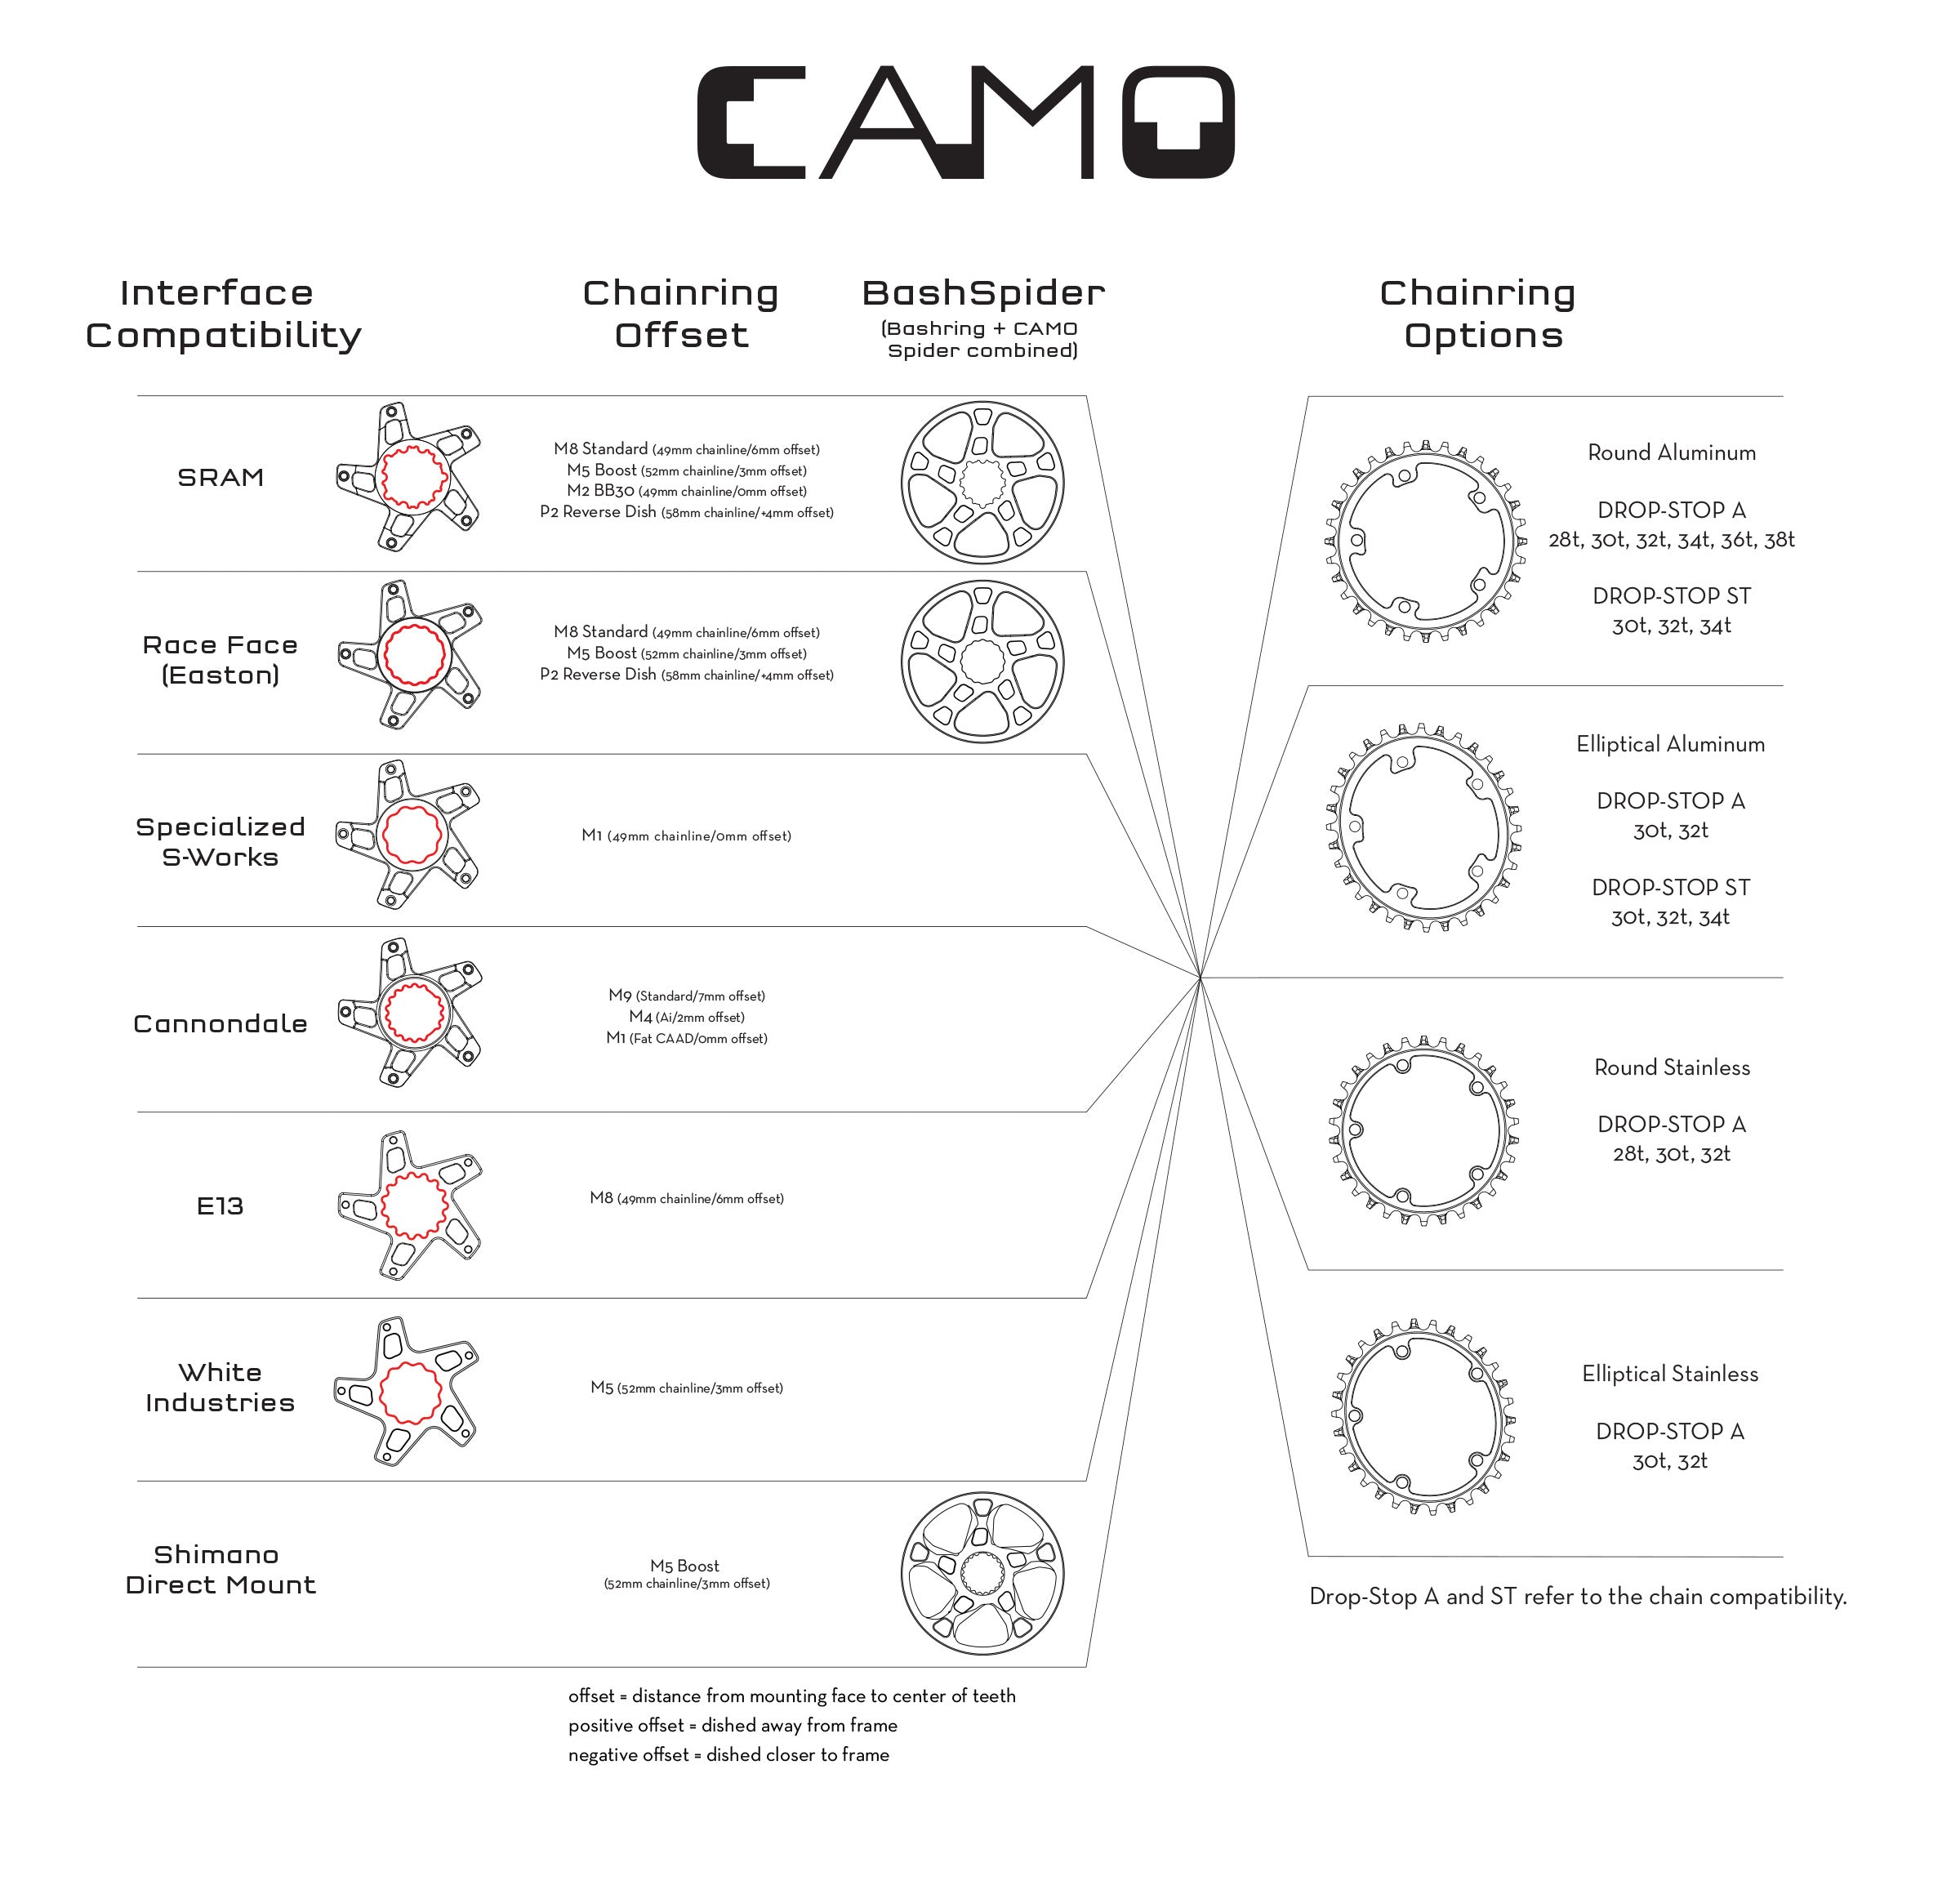 Wolf Tooth CAMO System Compatibility